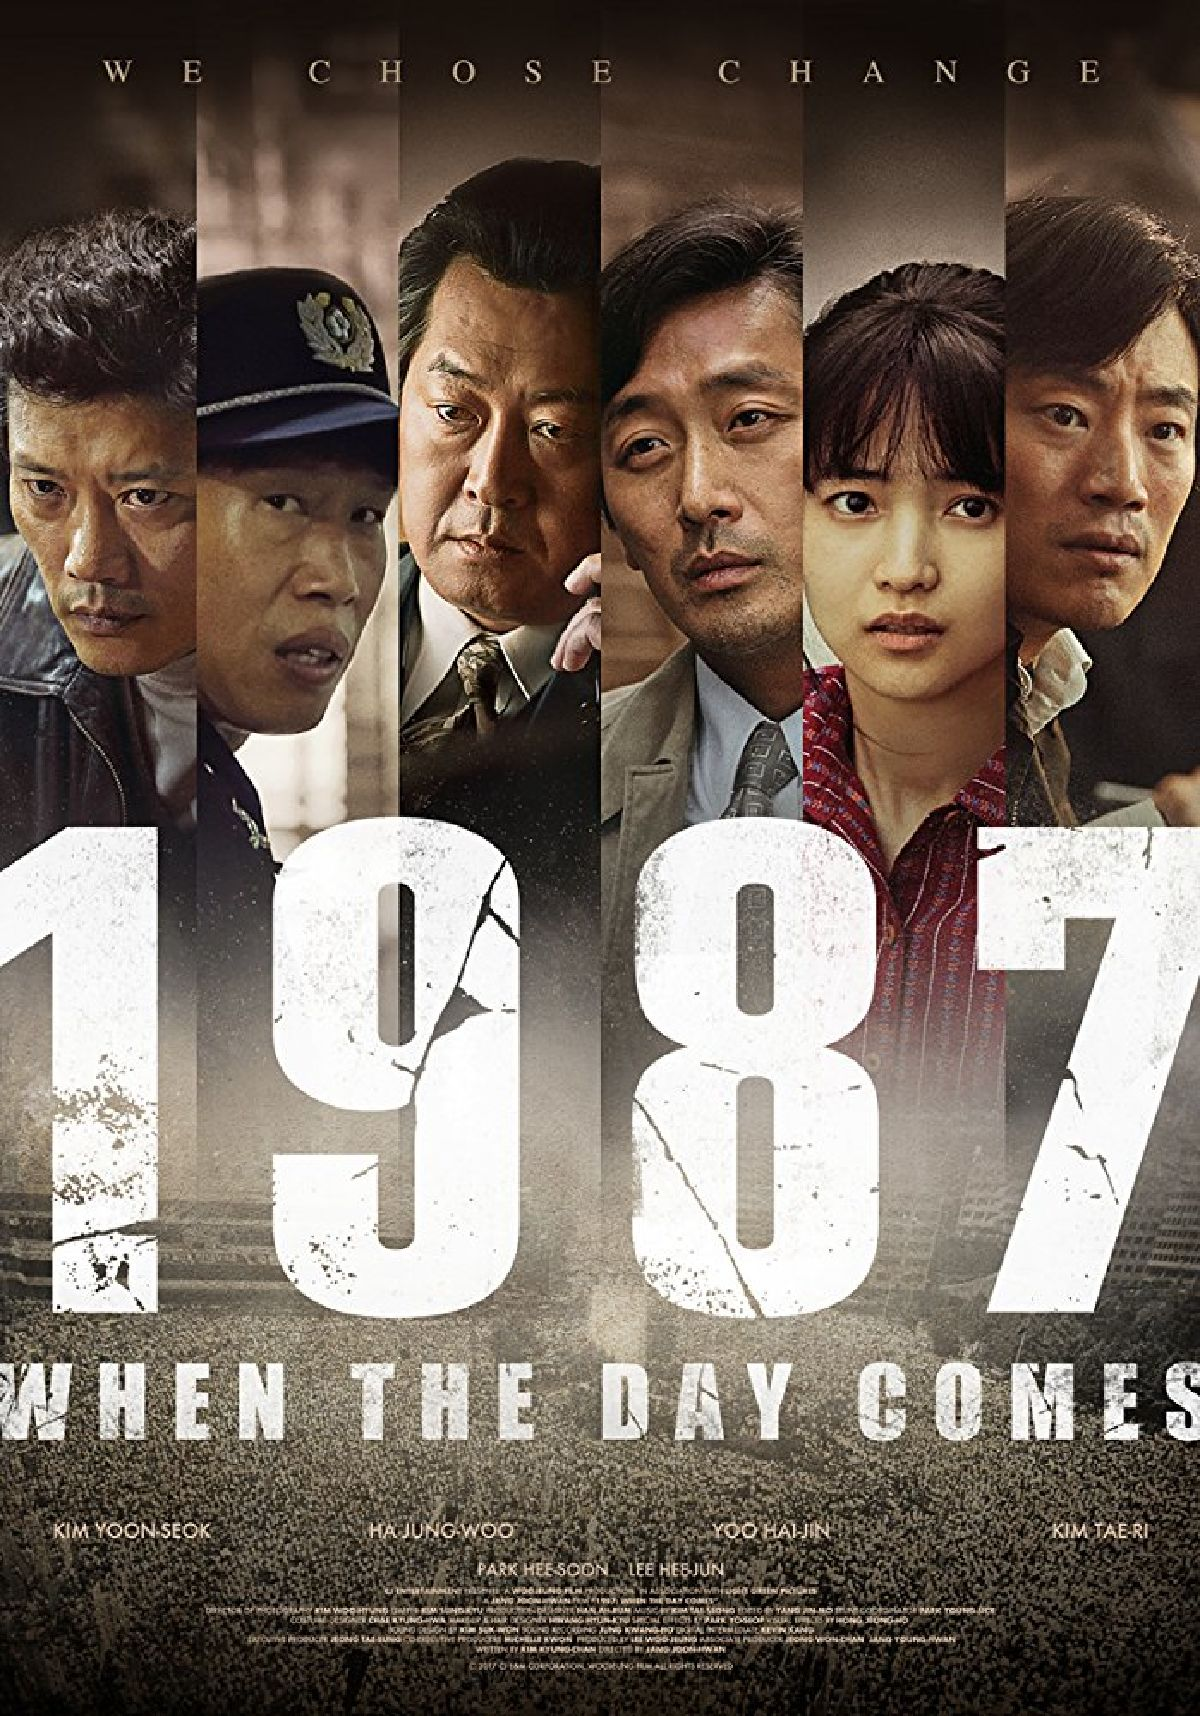 '1987: When The Day Comes' movie poster